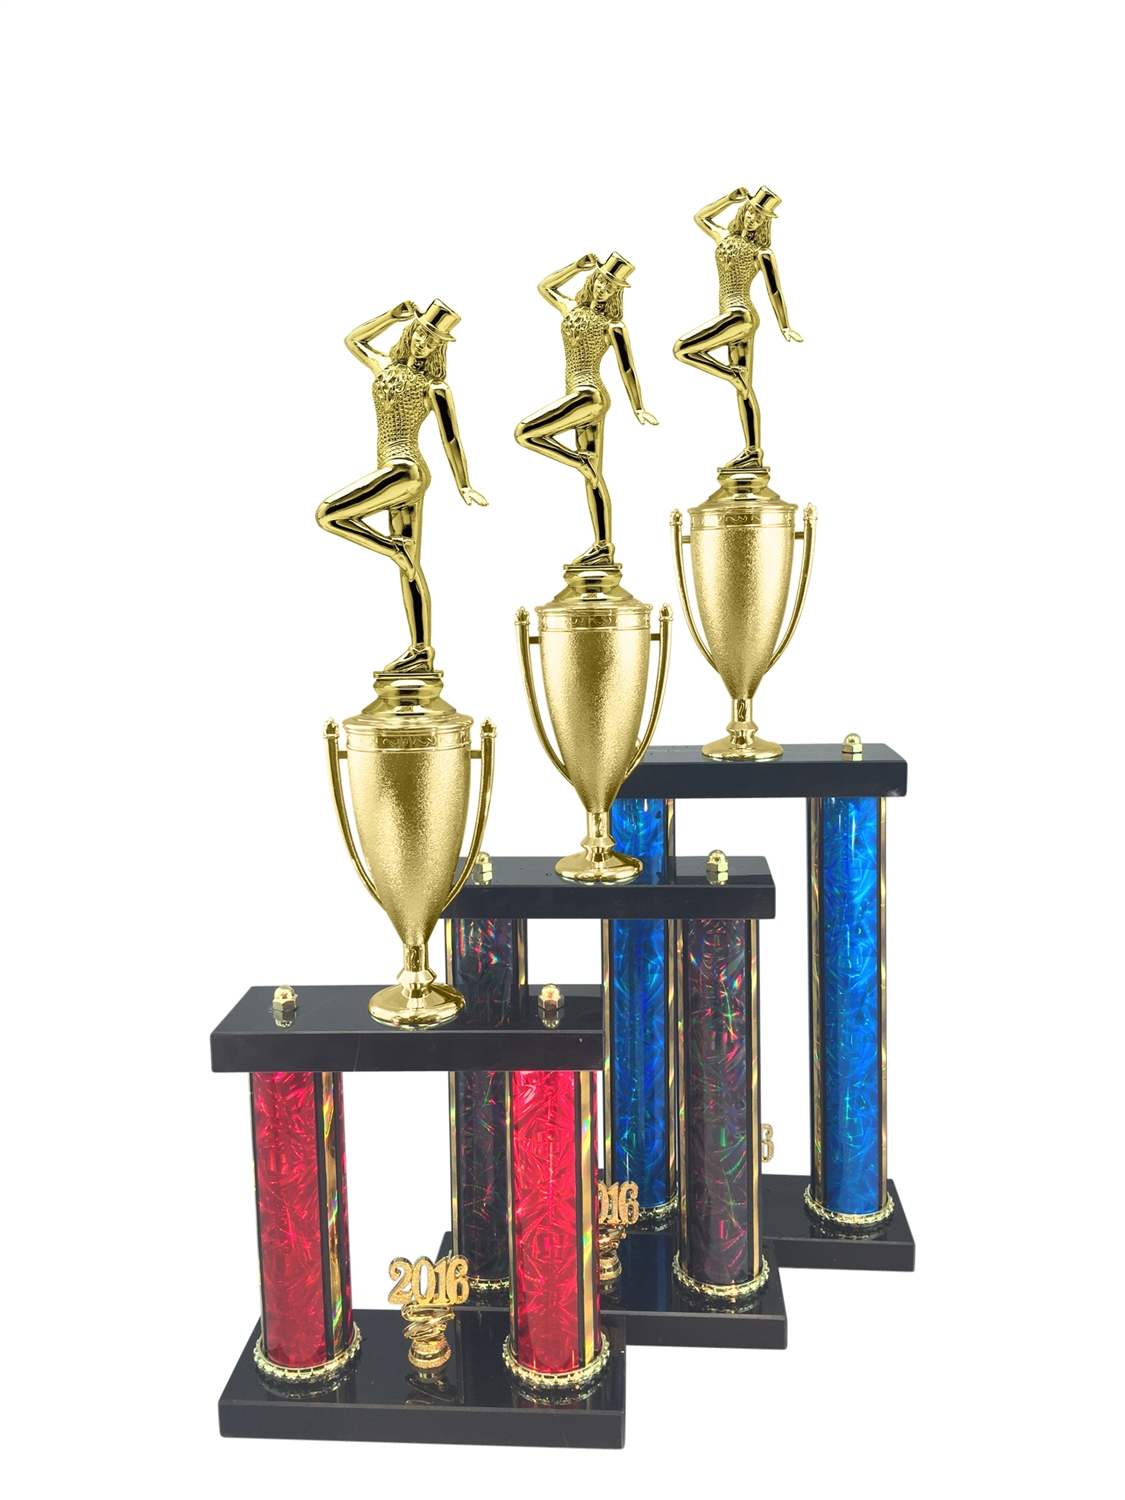 2 Post Tap Dance Trophy in 11 Color & 3 Size Options